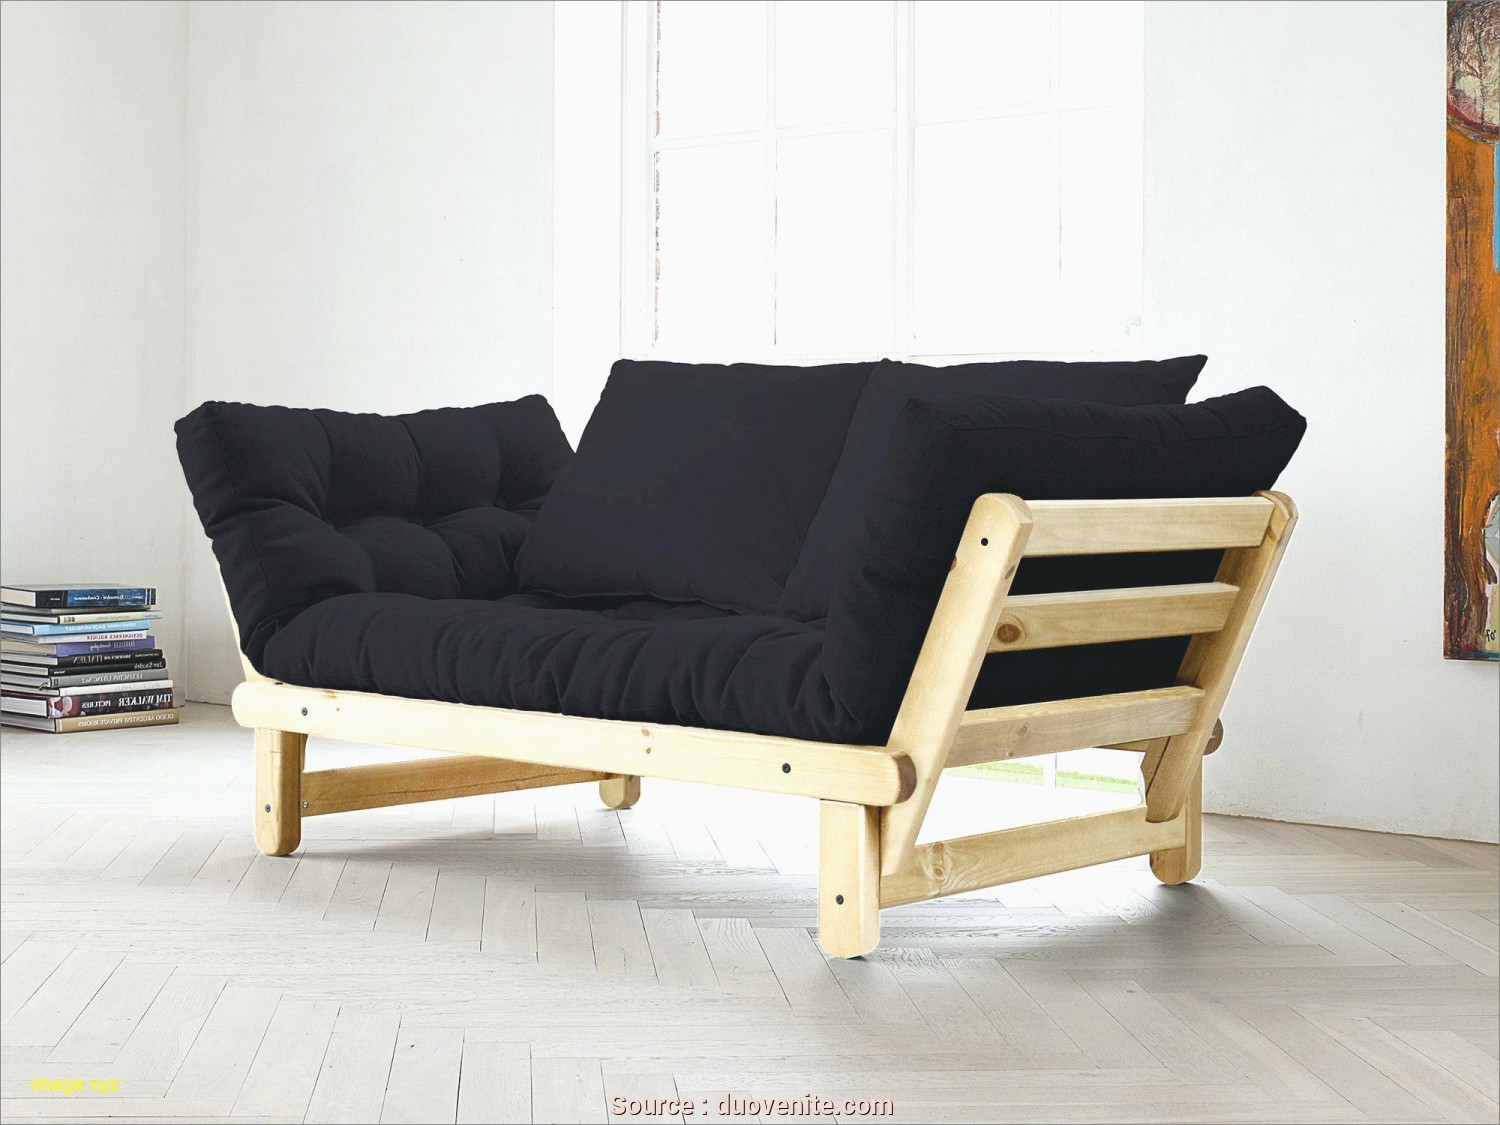 ikea grankulla futon - inspirational interior style concepts for